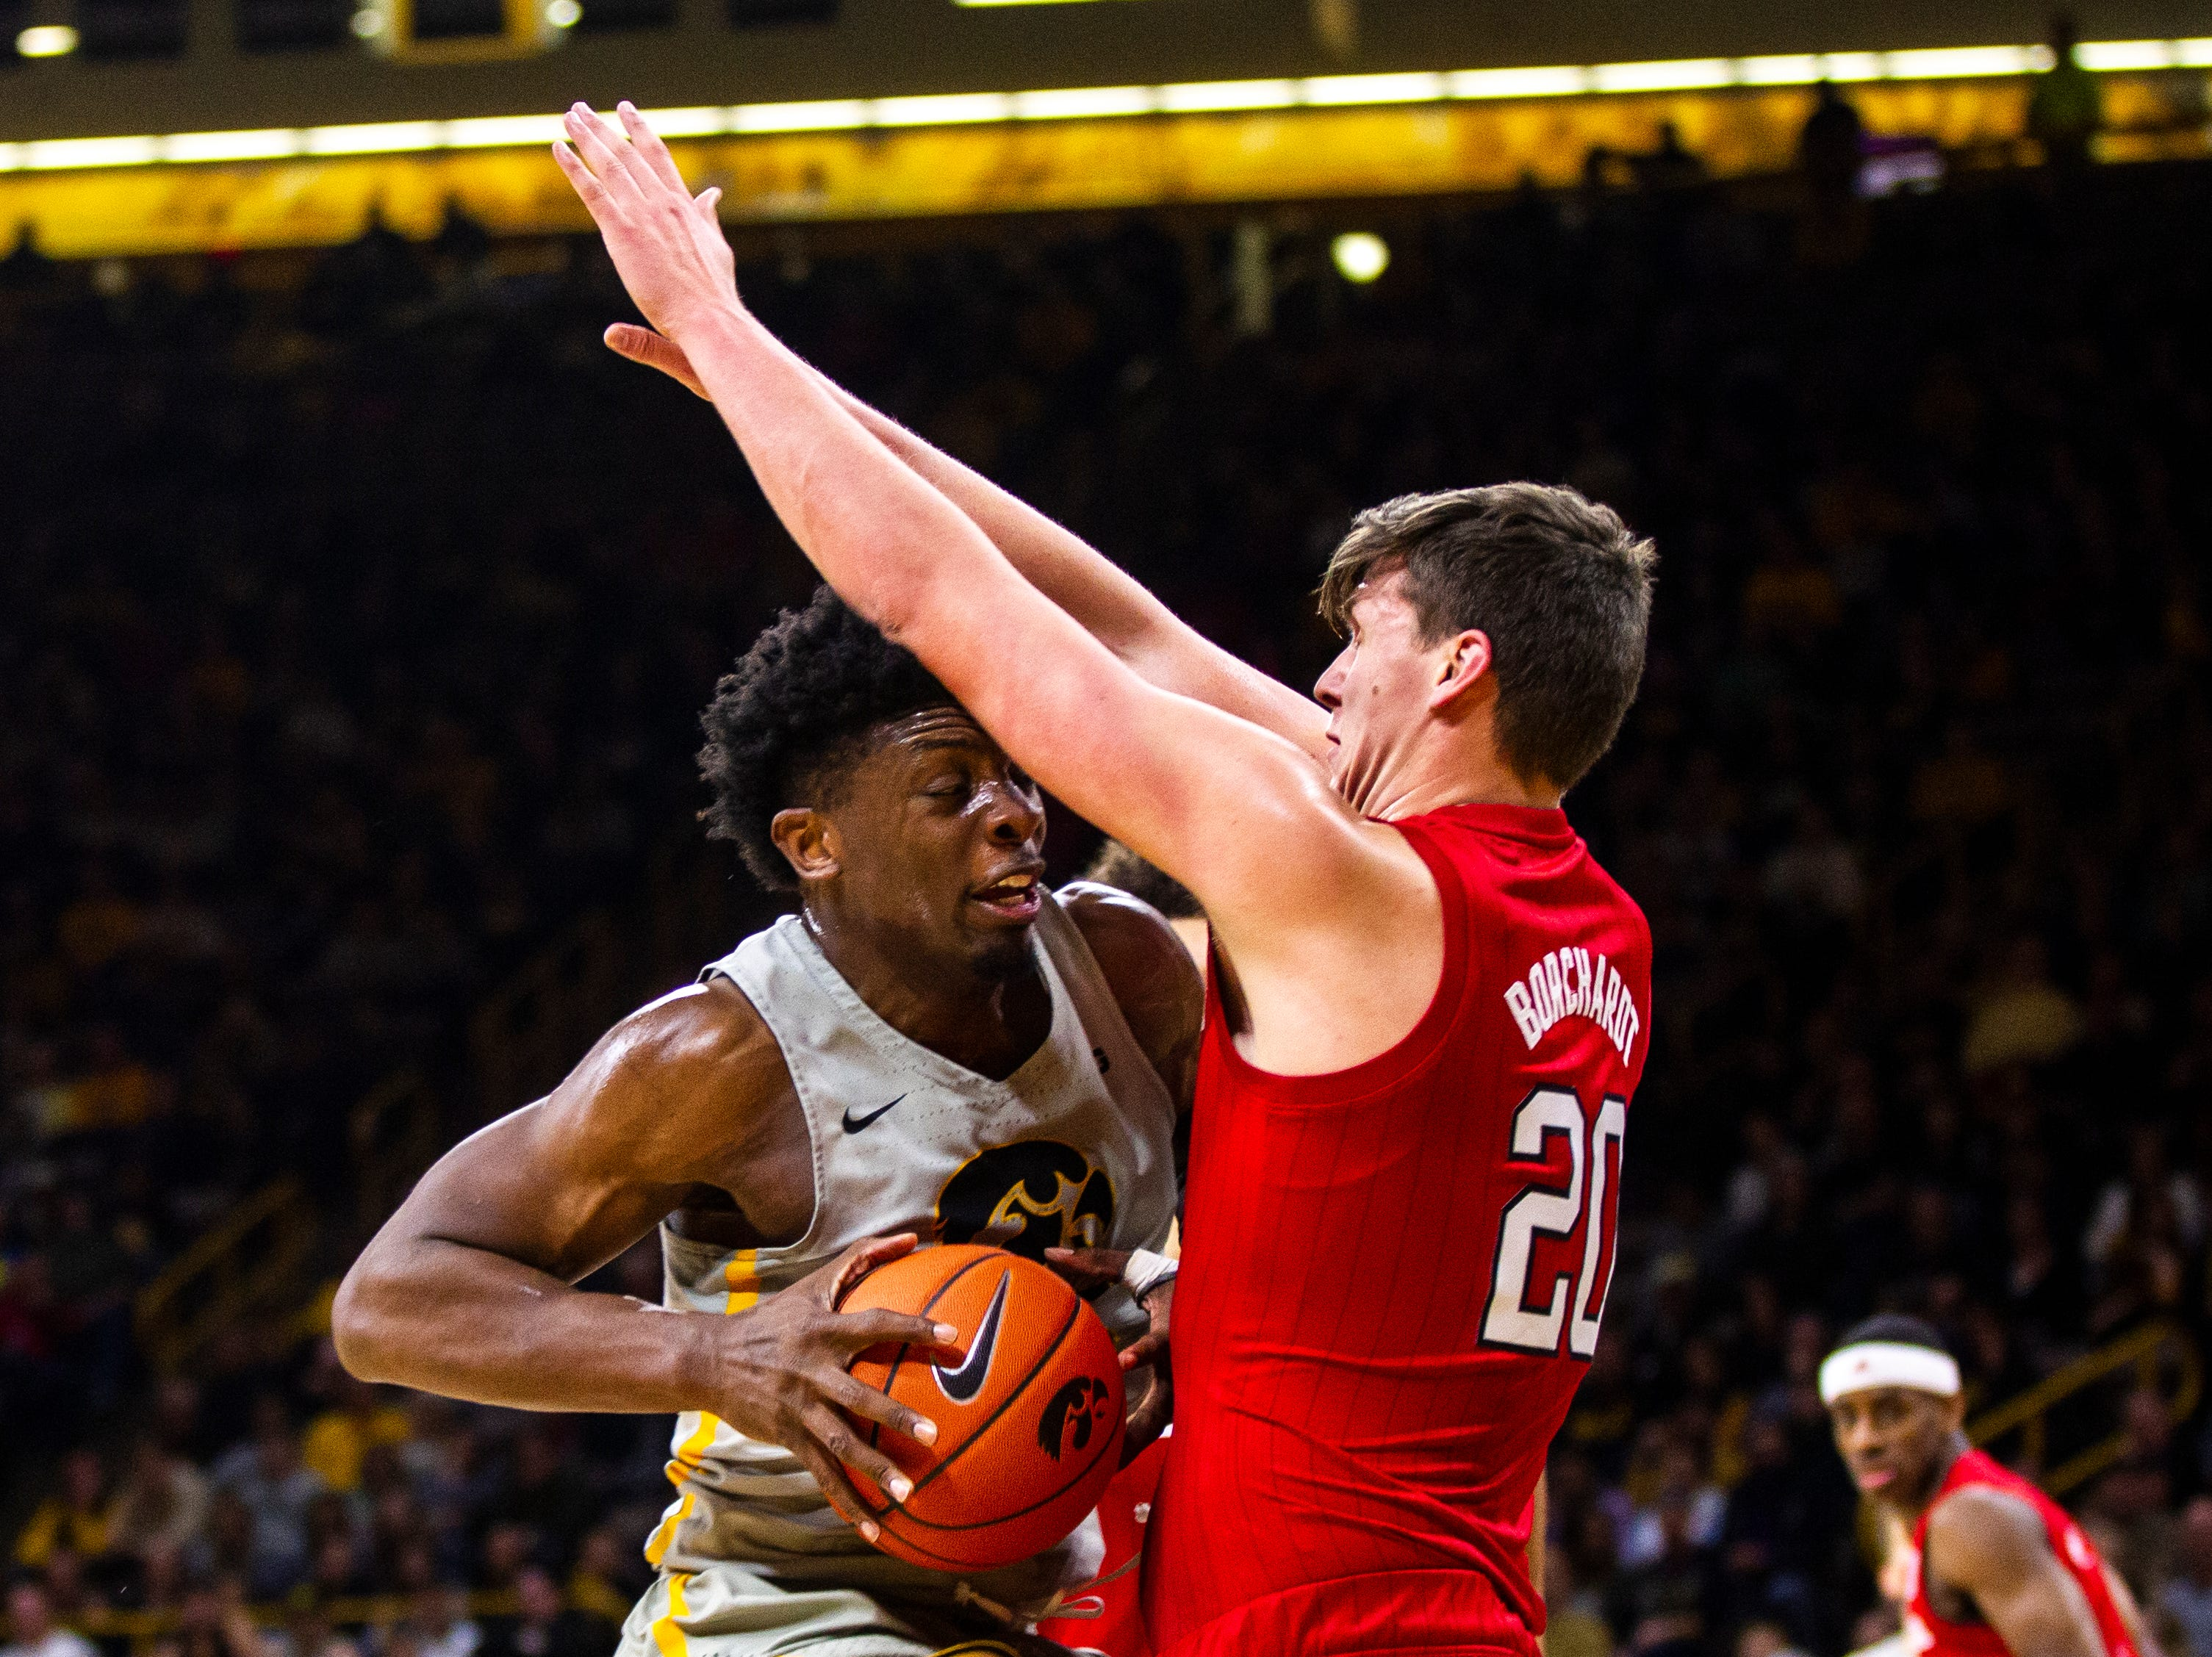 Iowa forward Tyler Cook (25) charges Nebraska forward Tanner Borchardt (20) during a NCAA Big Ten Conference men's basketball game on Sunday, Jan. 6, 2019, at the Carver-Hawkeye Arena in Iowa City, Iowa.